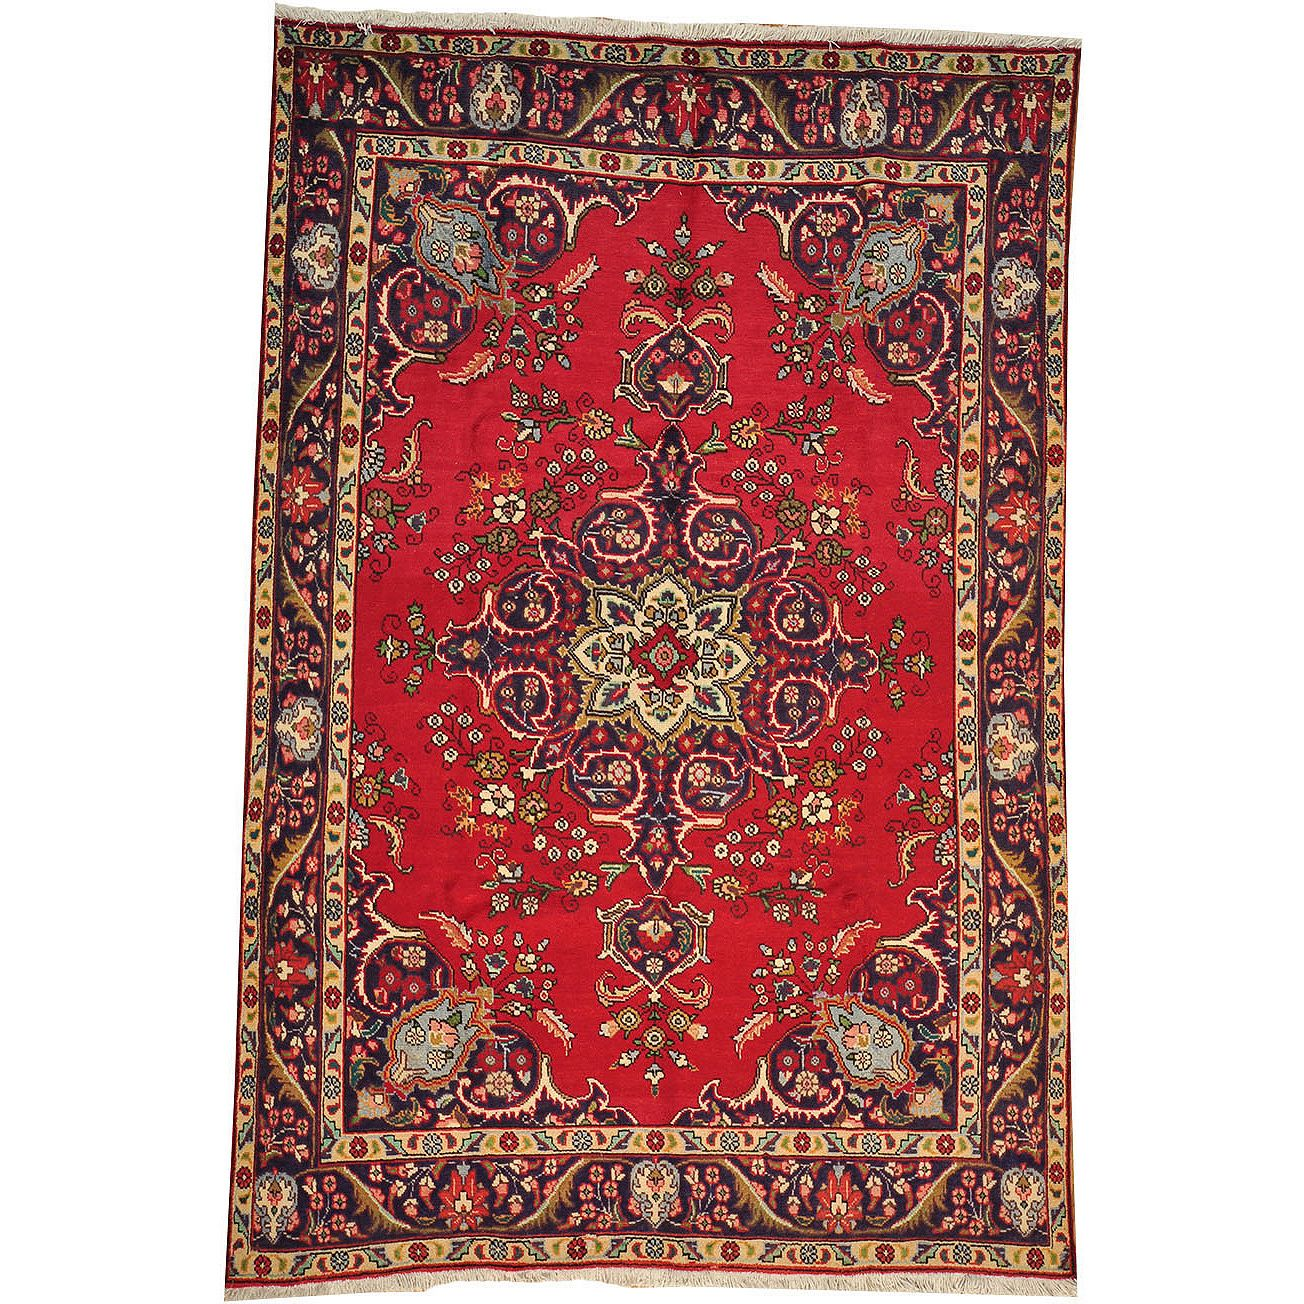 Hand-knotted Semi Antique Persian Tabriz Wool Area Rug (6'9 x 10'4) - Overstock Shopping - Great Deals on One Of A Kind Rugs